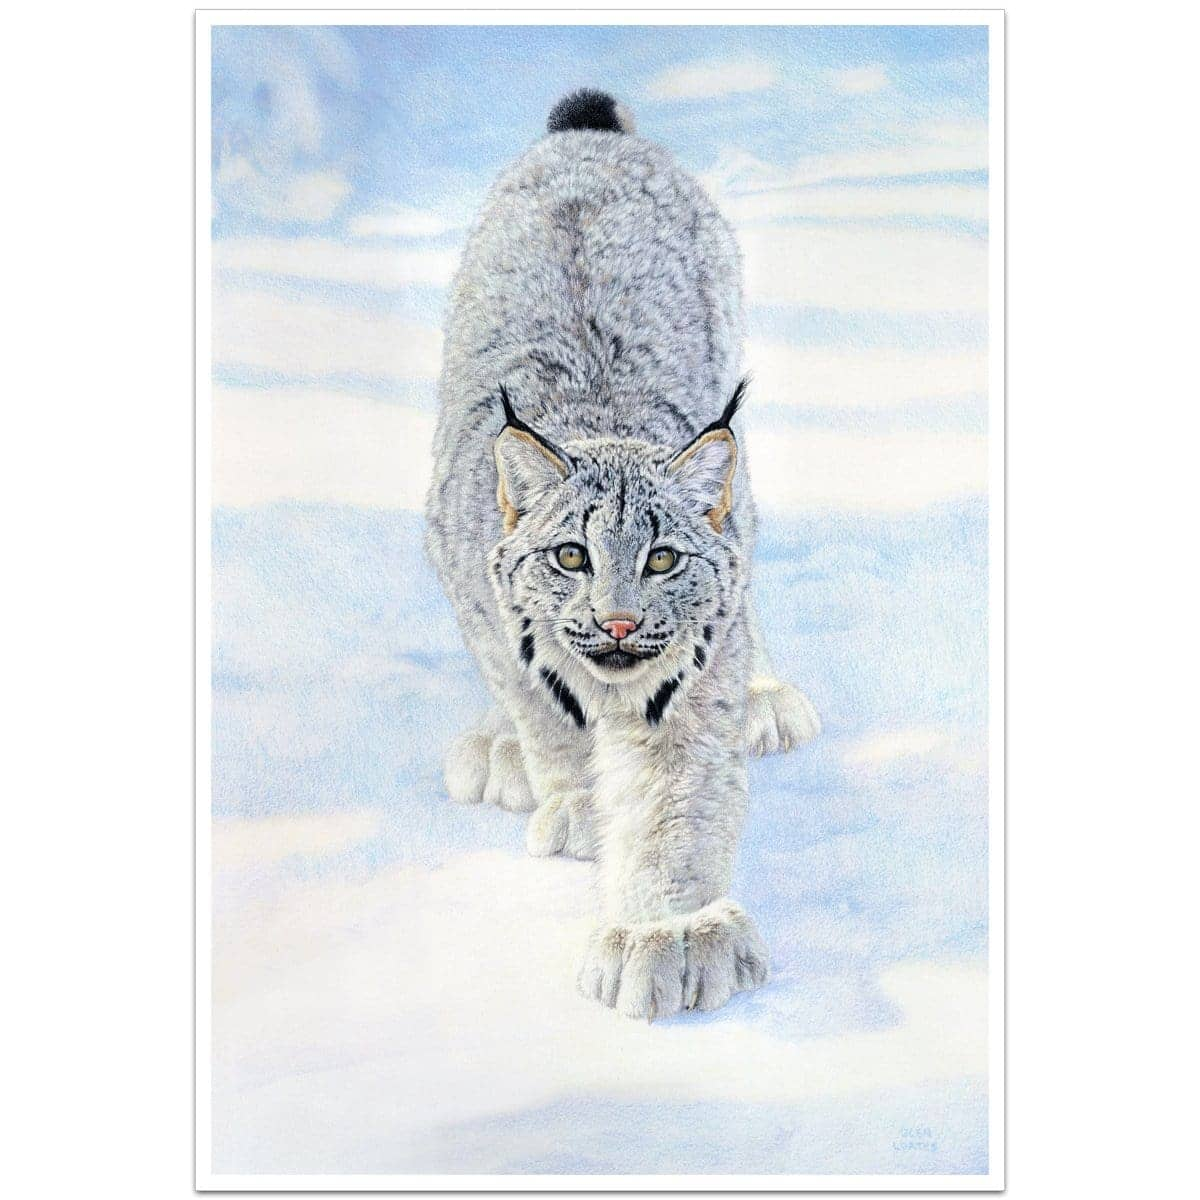 Stalking Lynx - Art Print by Glen Loates from the Glen Loates Store